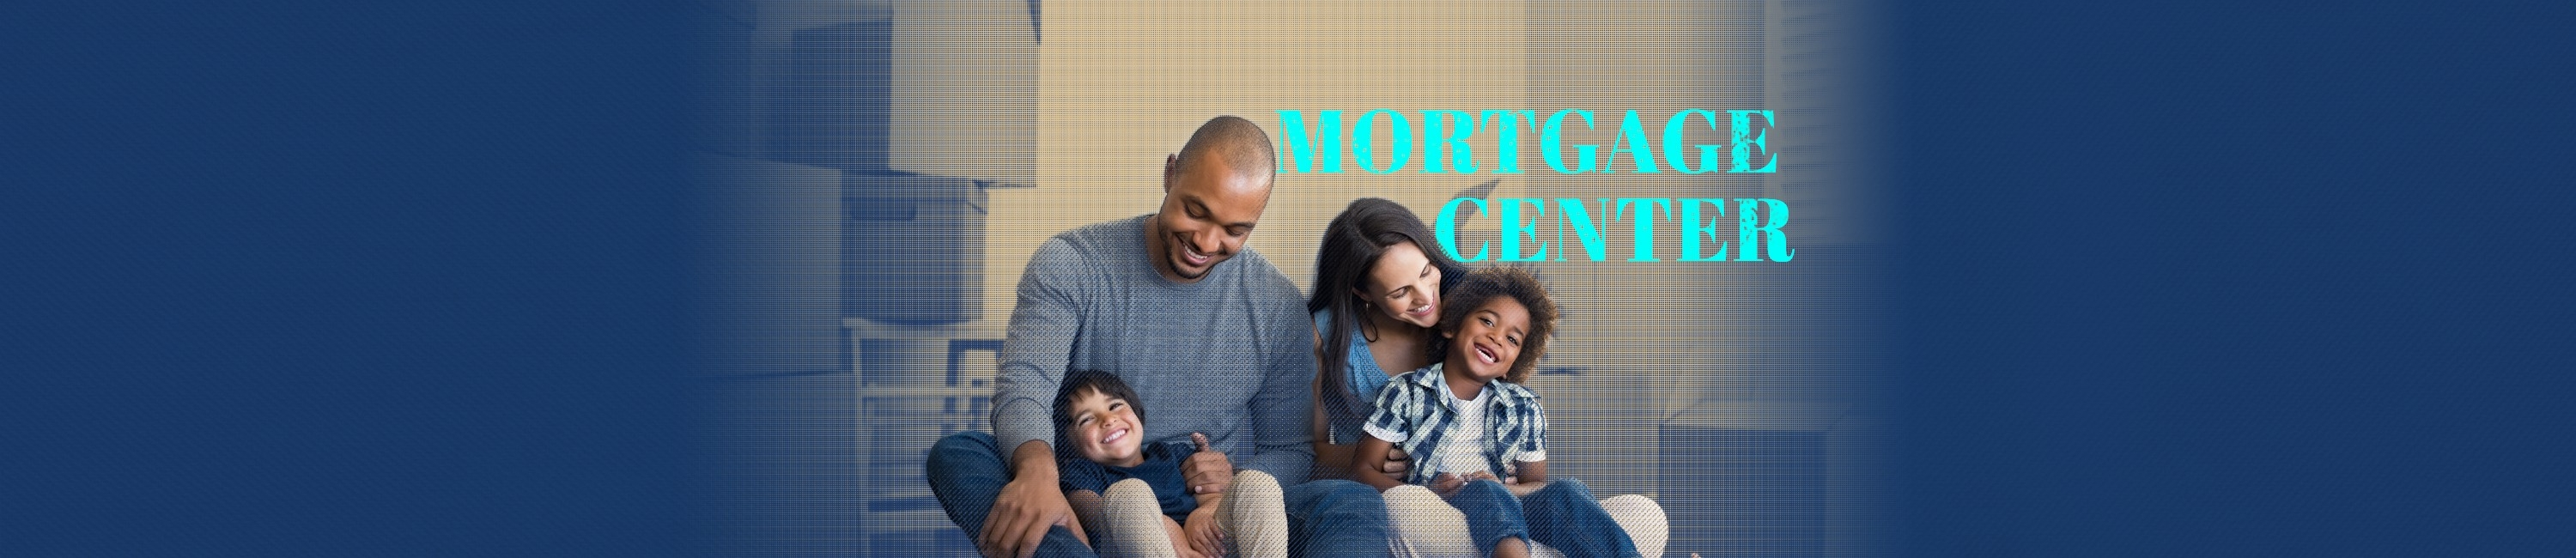 family smiling happily since they just purchased their new home with community state bank Mortgage Center Words on photo say Mortgage Center